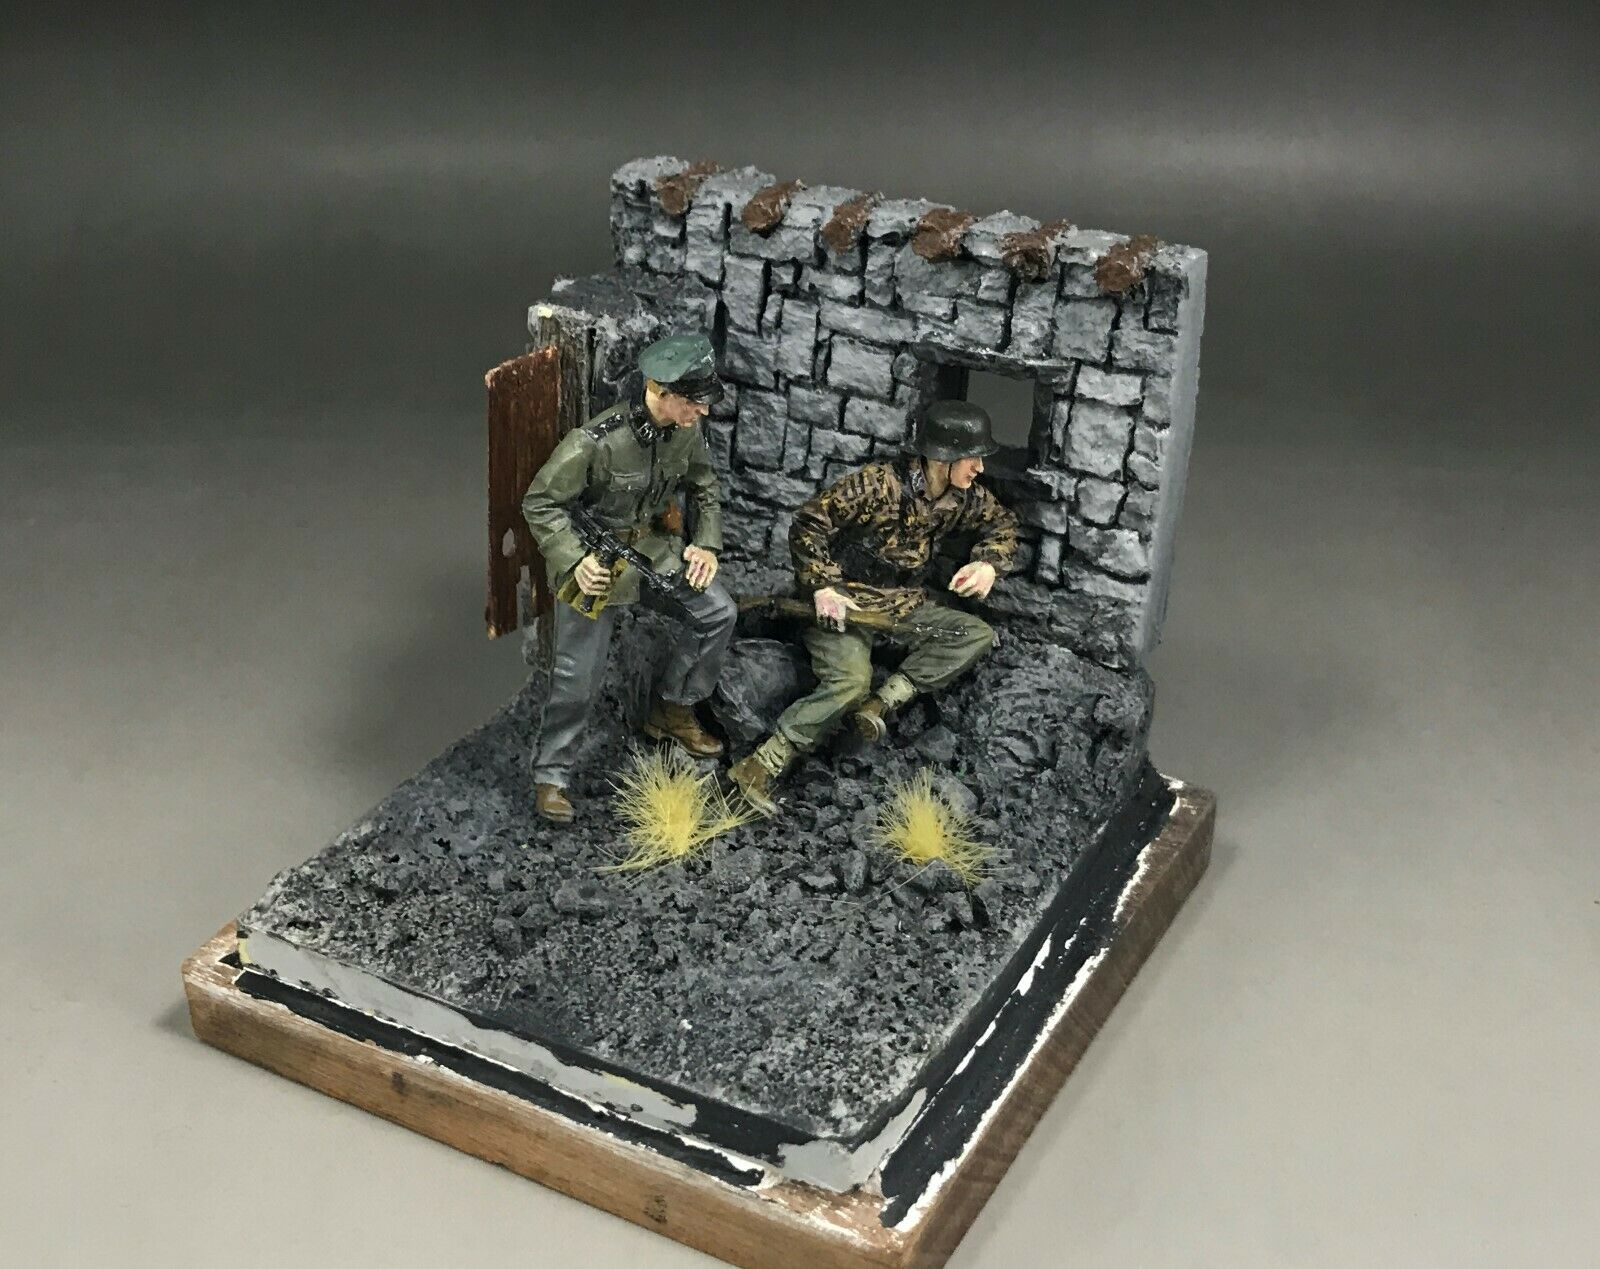 1 35 Built and Painted Resin WWII Figure Diorama Base A for Figure Model